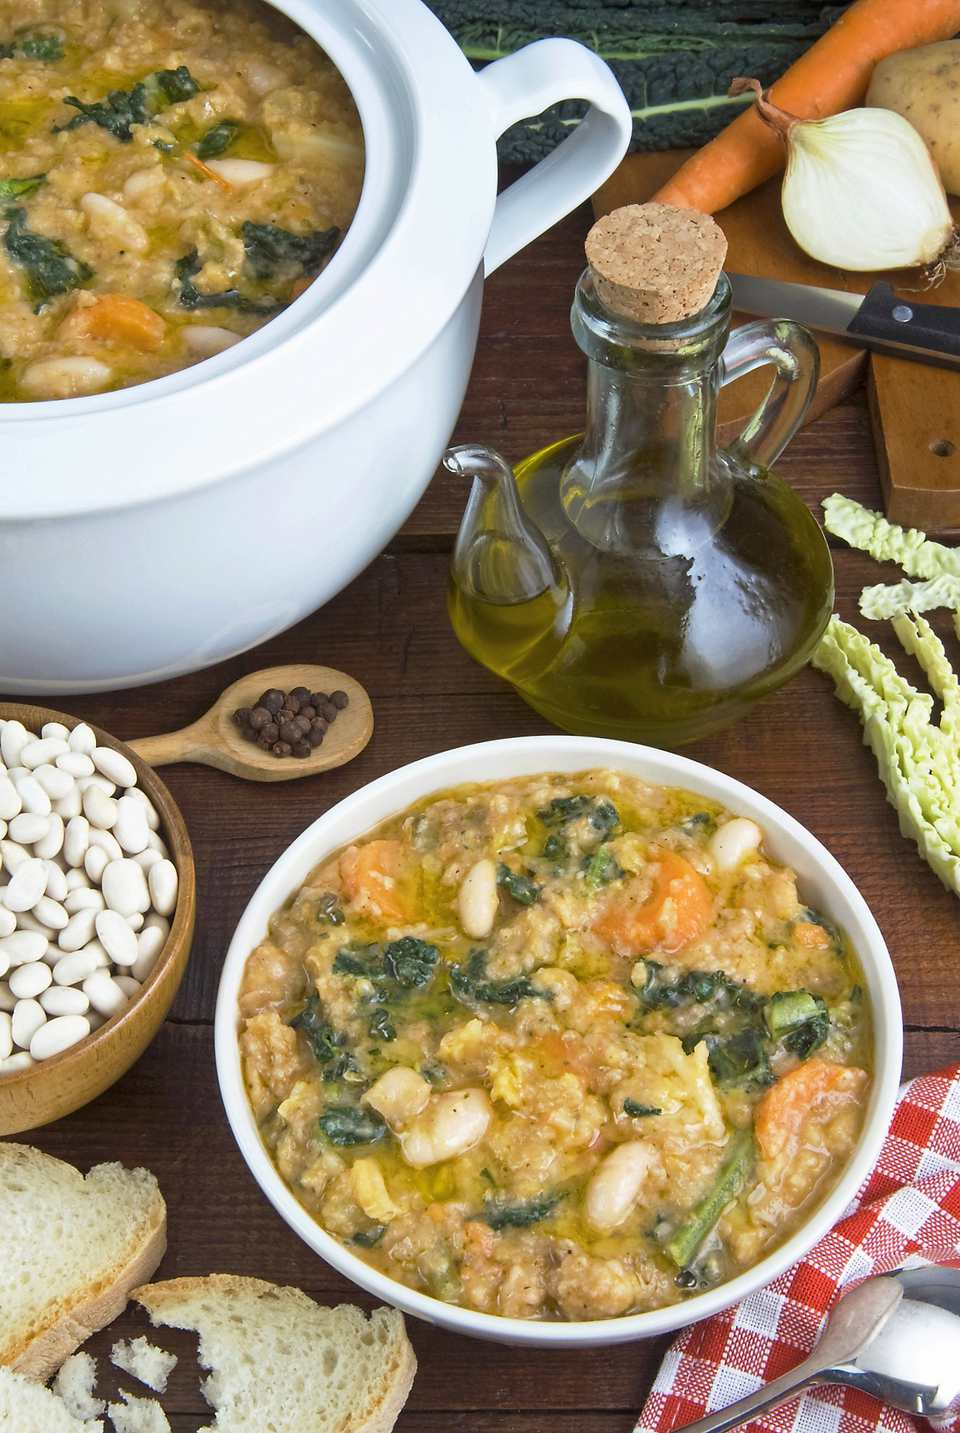 Tuscan Ribollita soup (Florentine soup) made with lacinato kale, cannellini beans, Tuscan bread, and olive oil.